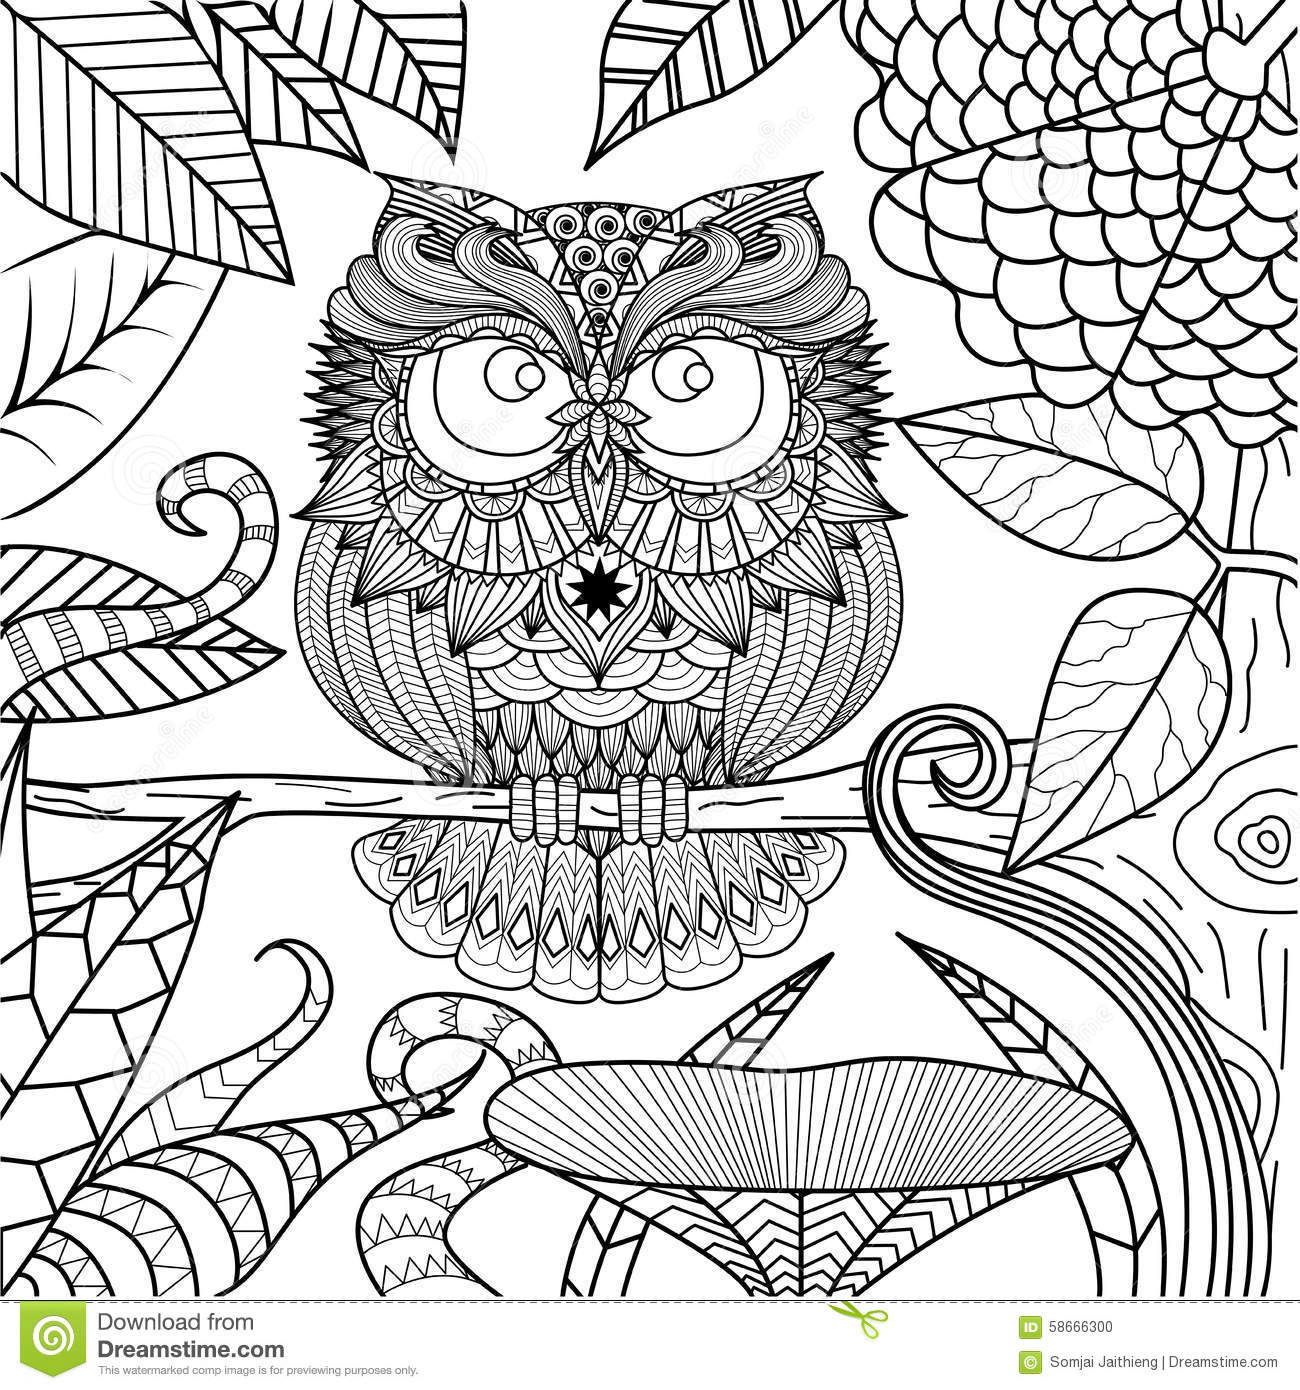 owl drawing for coloring book - Drawing Coloring